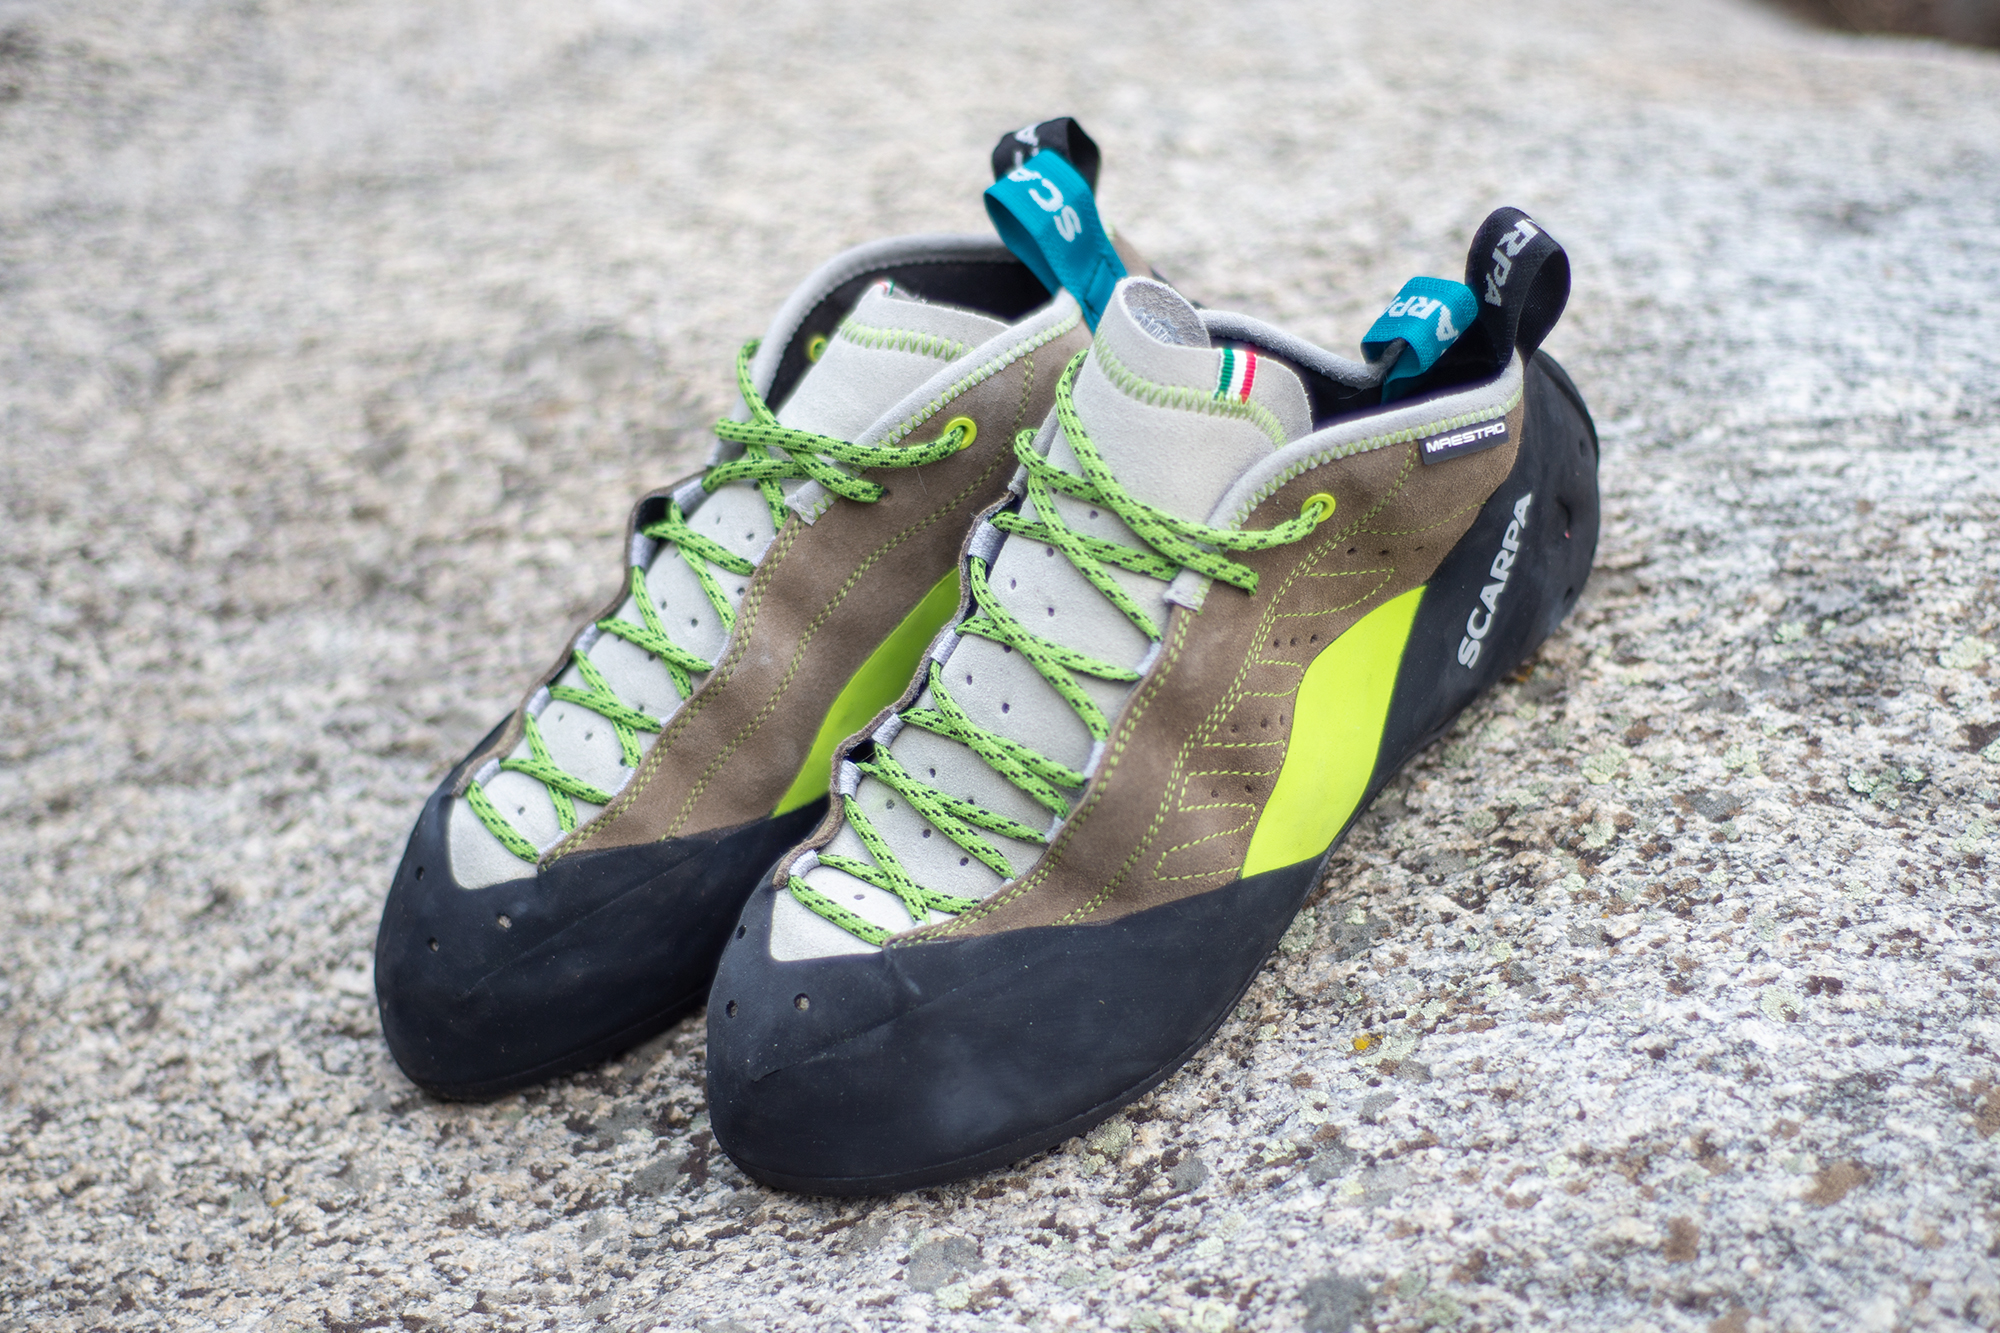 All Scarpa Climbing Shoes Are on Sale at REI  633aa3394d01